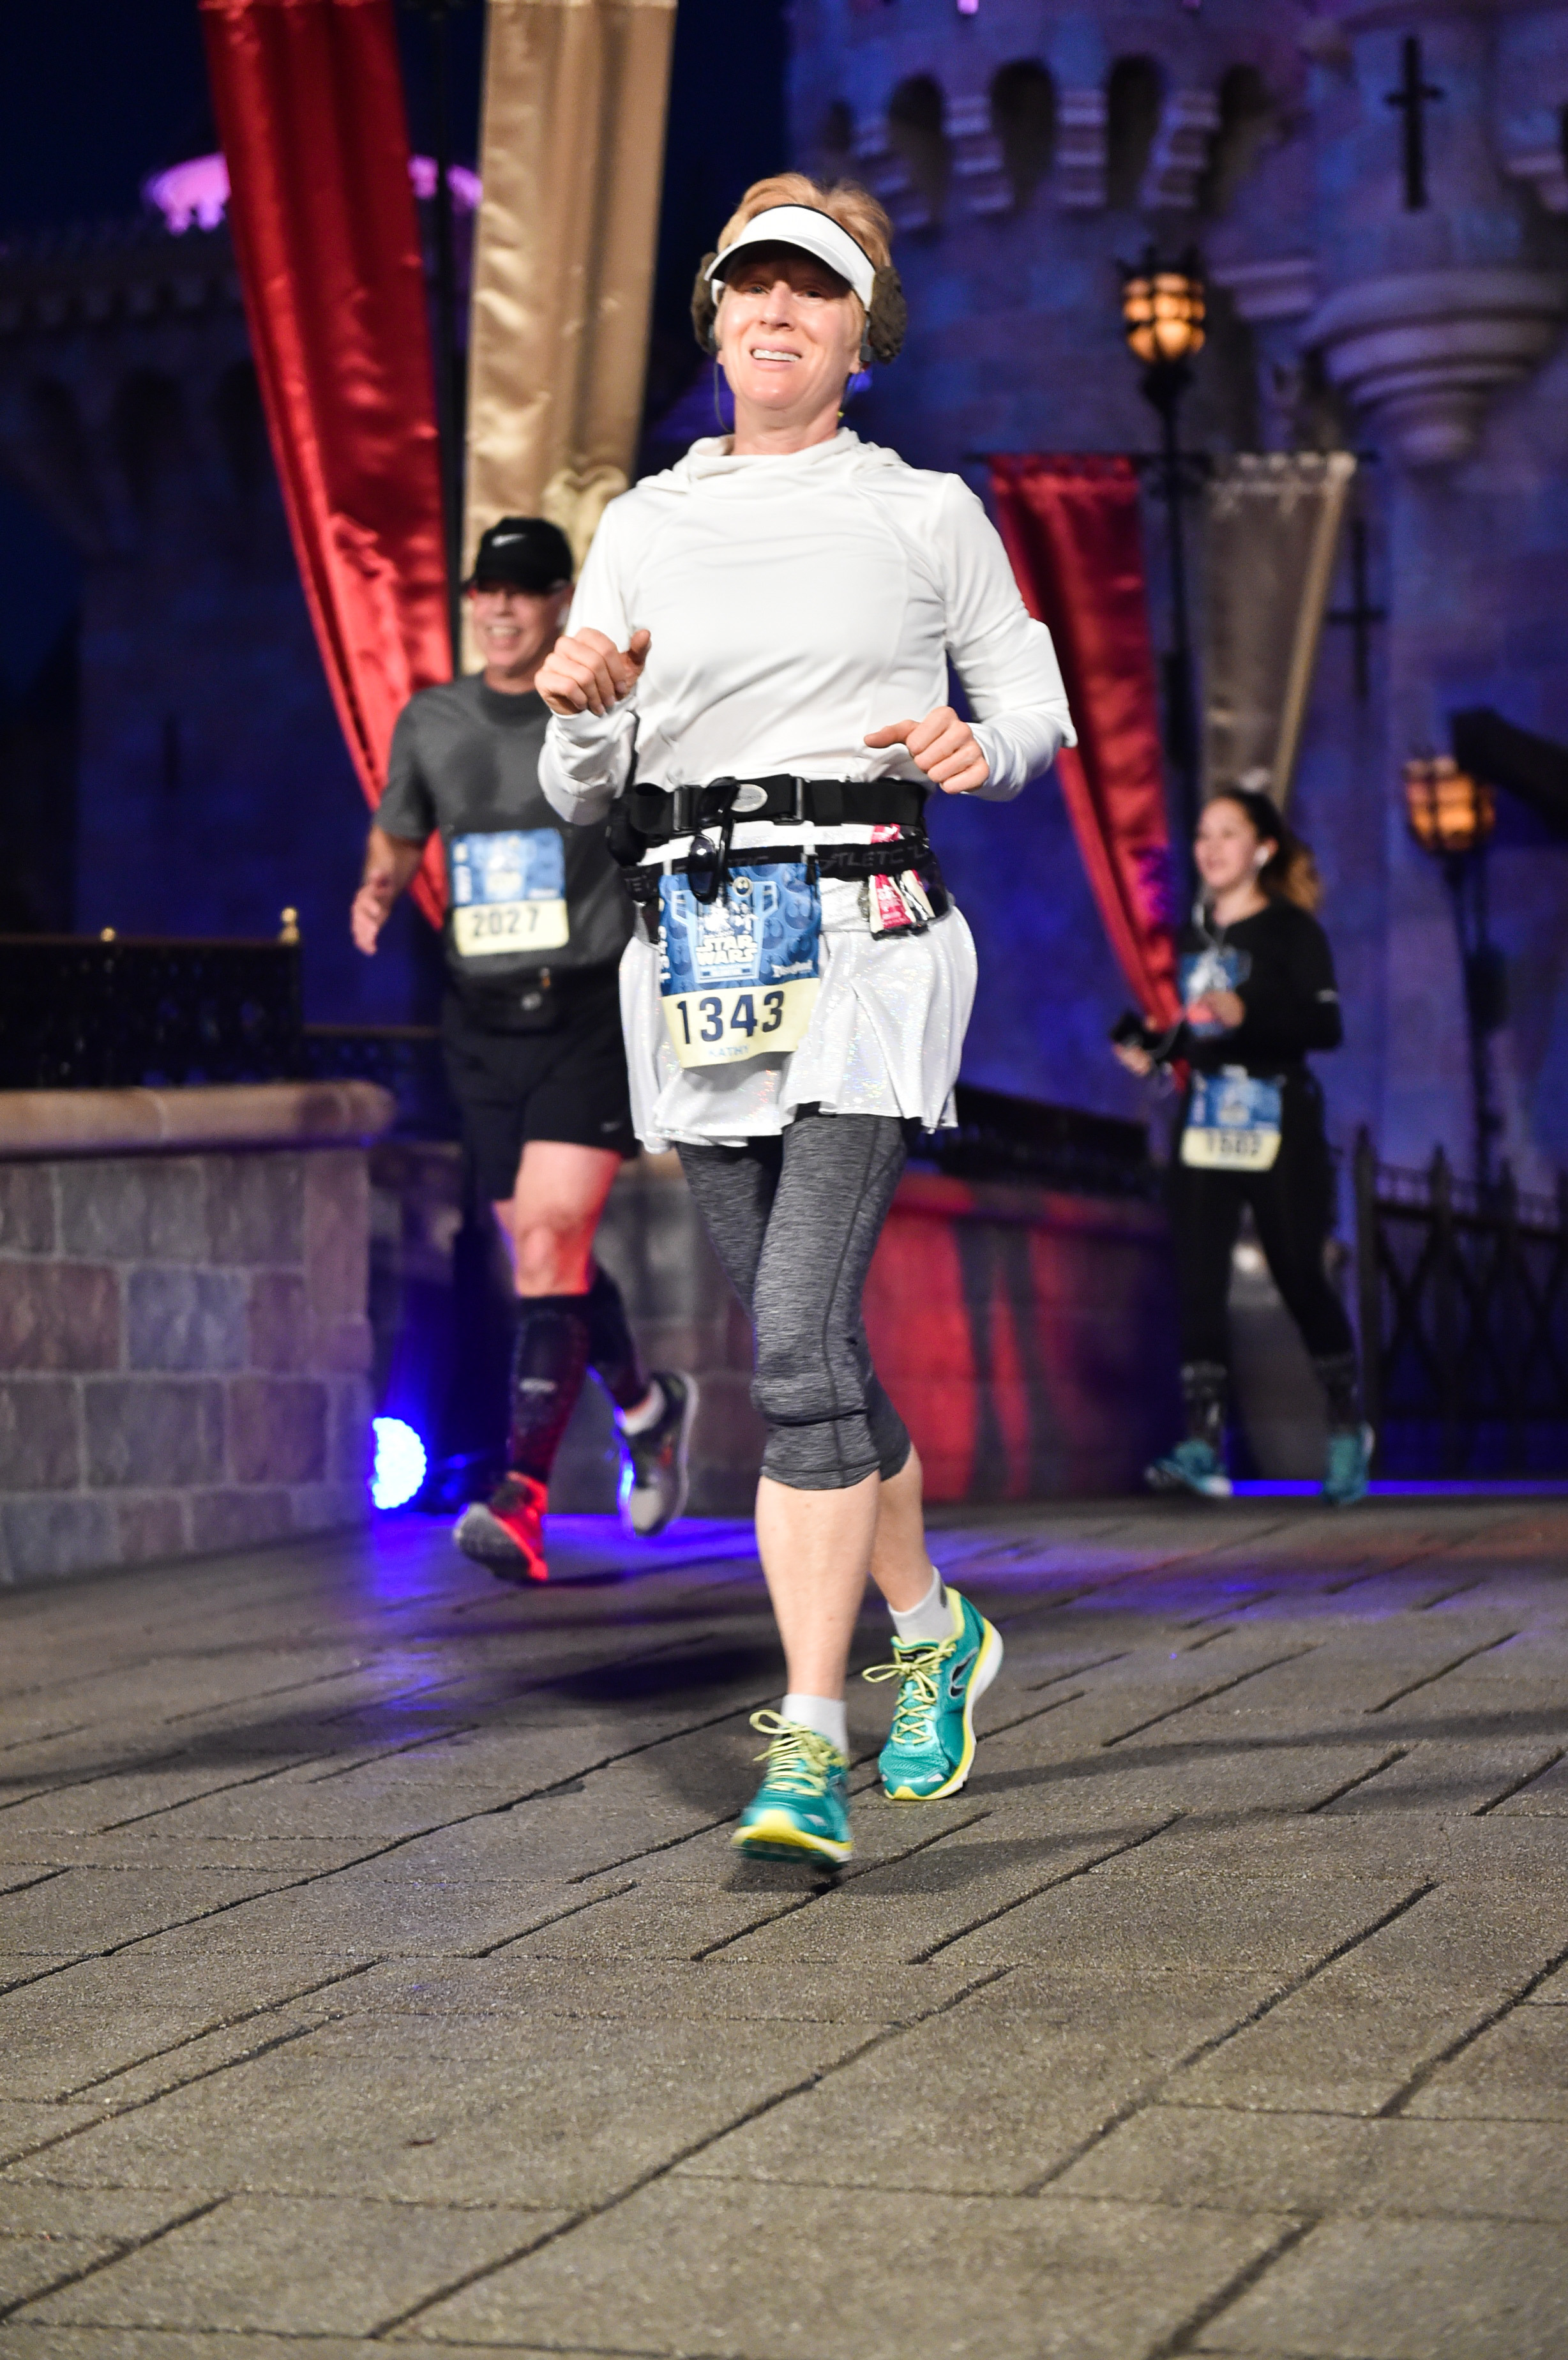 RUNDISNEY_DLRMARAACTION16_20170115_396266365646.jpg